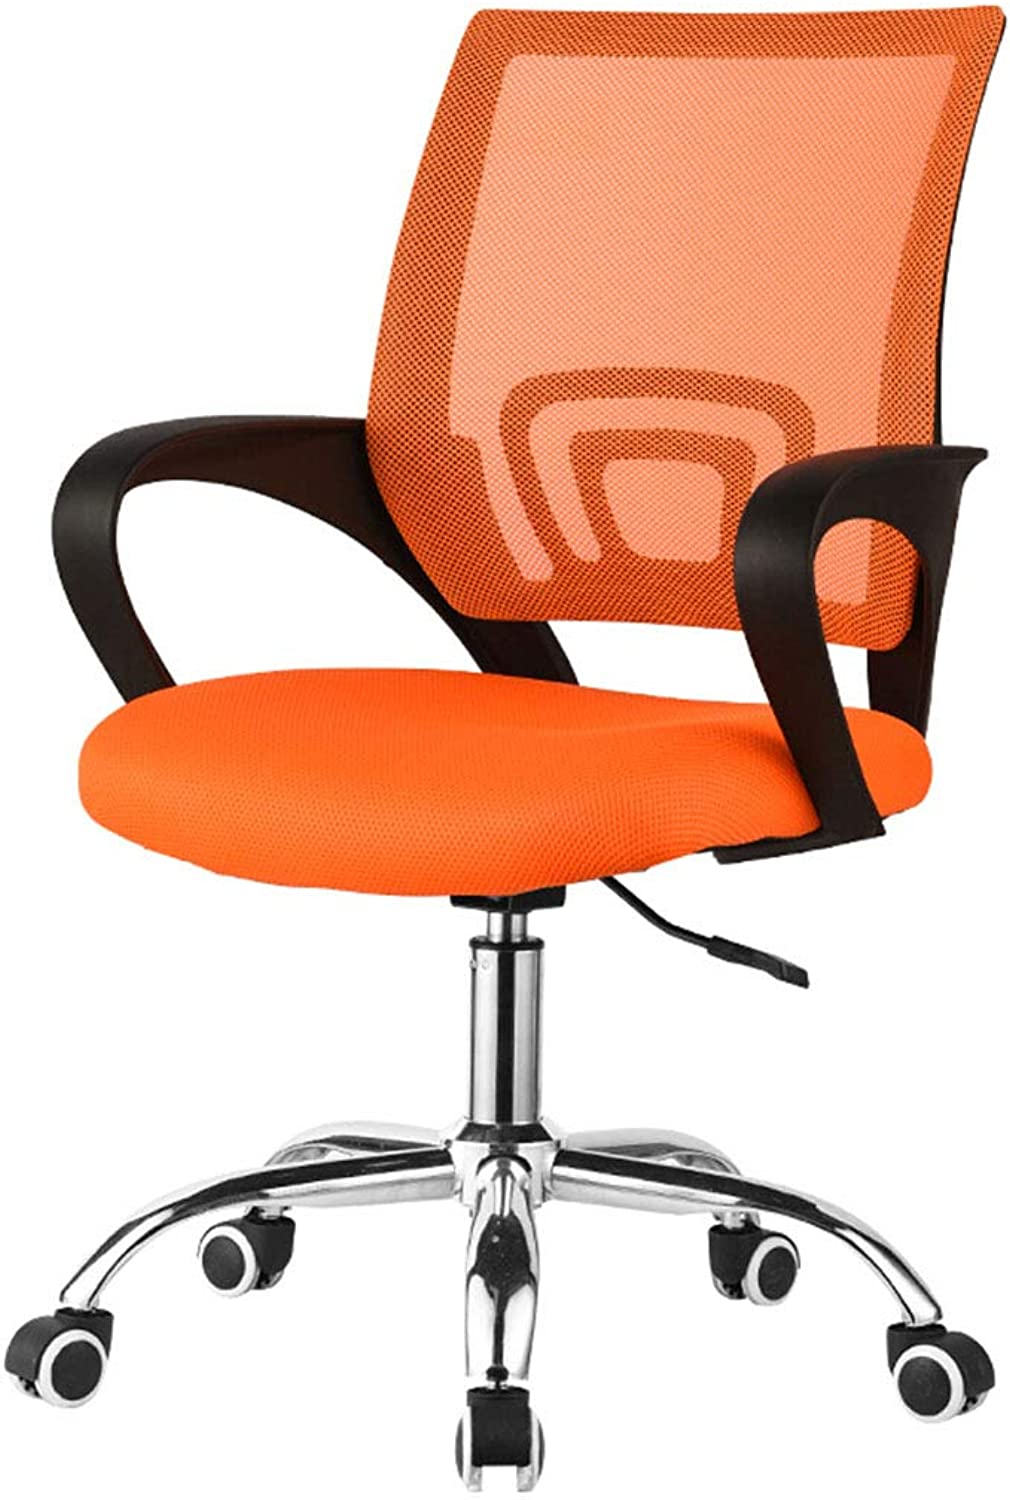 PeaceipUS Office Swivel Chair - Black - Soft and Comfortable - Wheeled Metal Tripod - Gaming-Black orange Green Optional (color   orange)